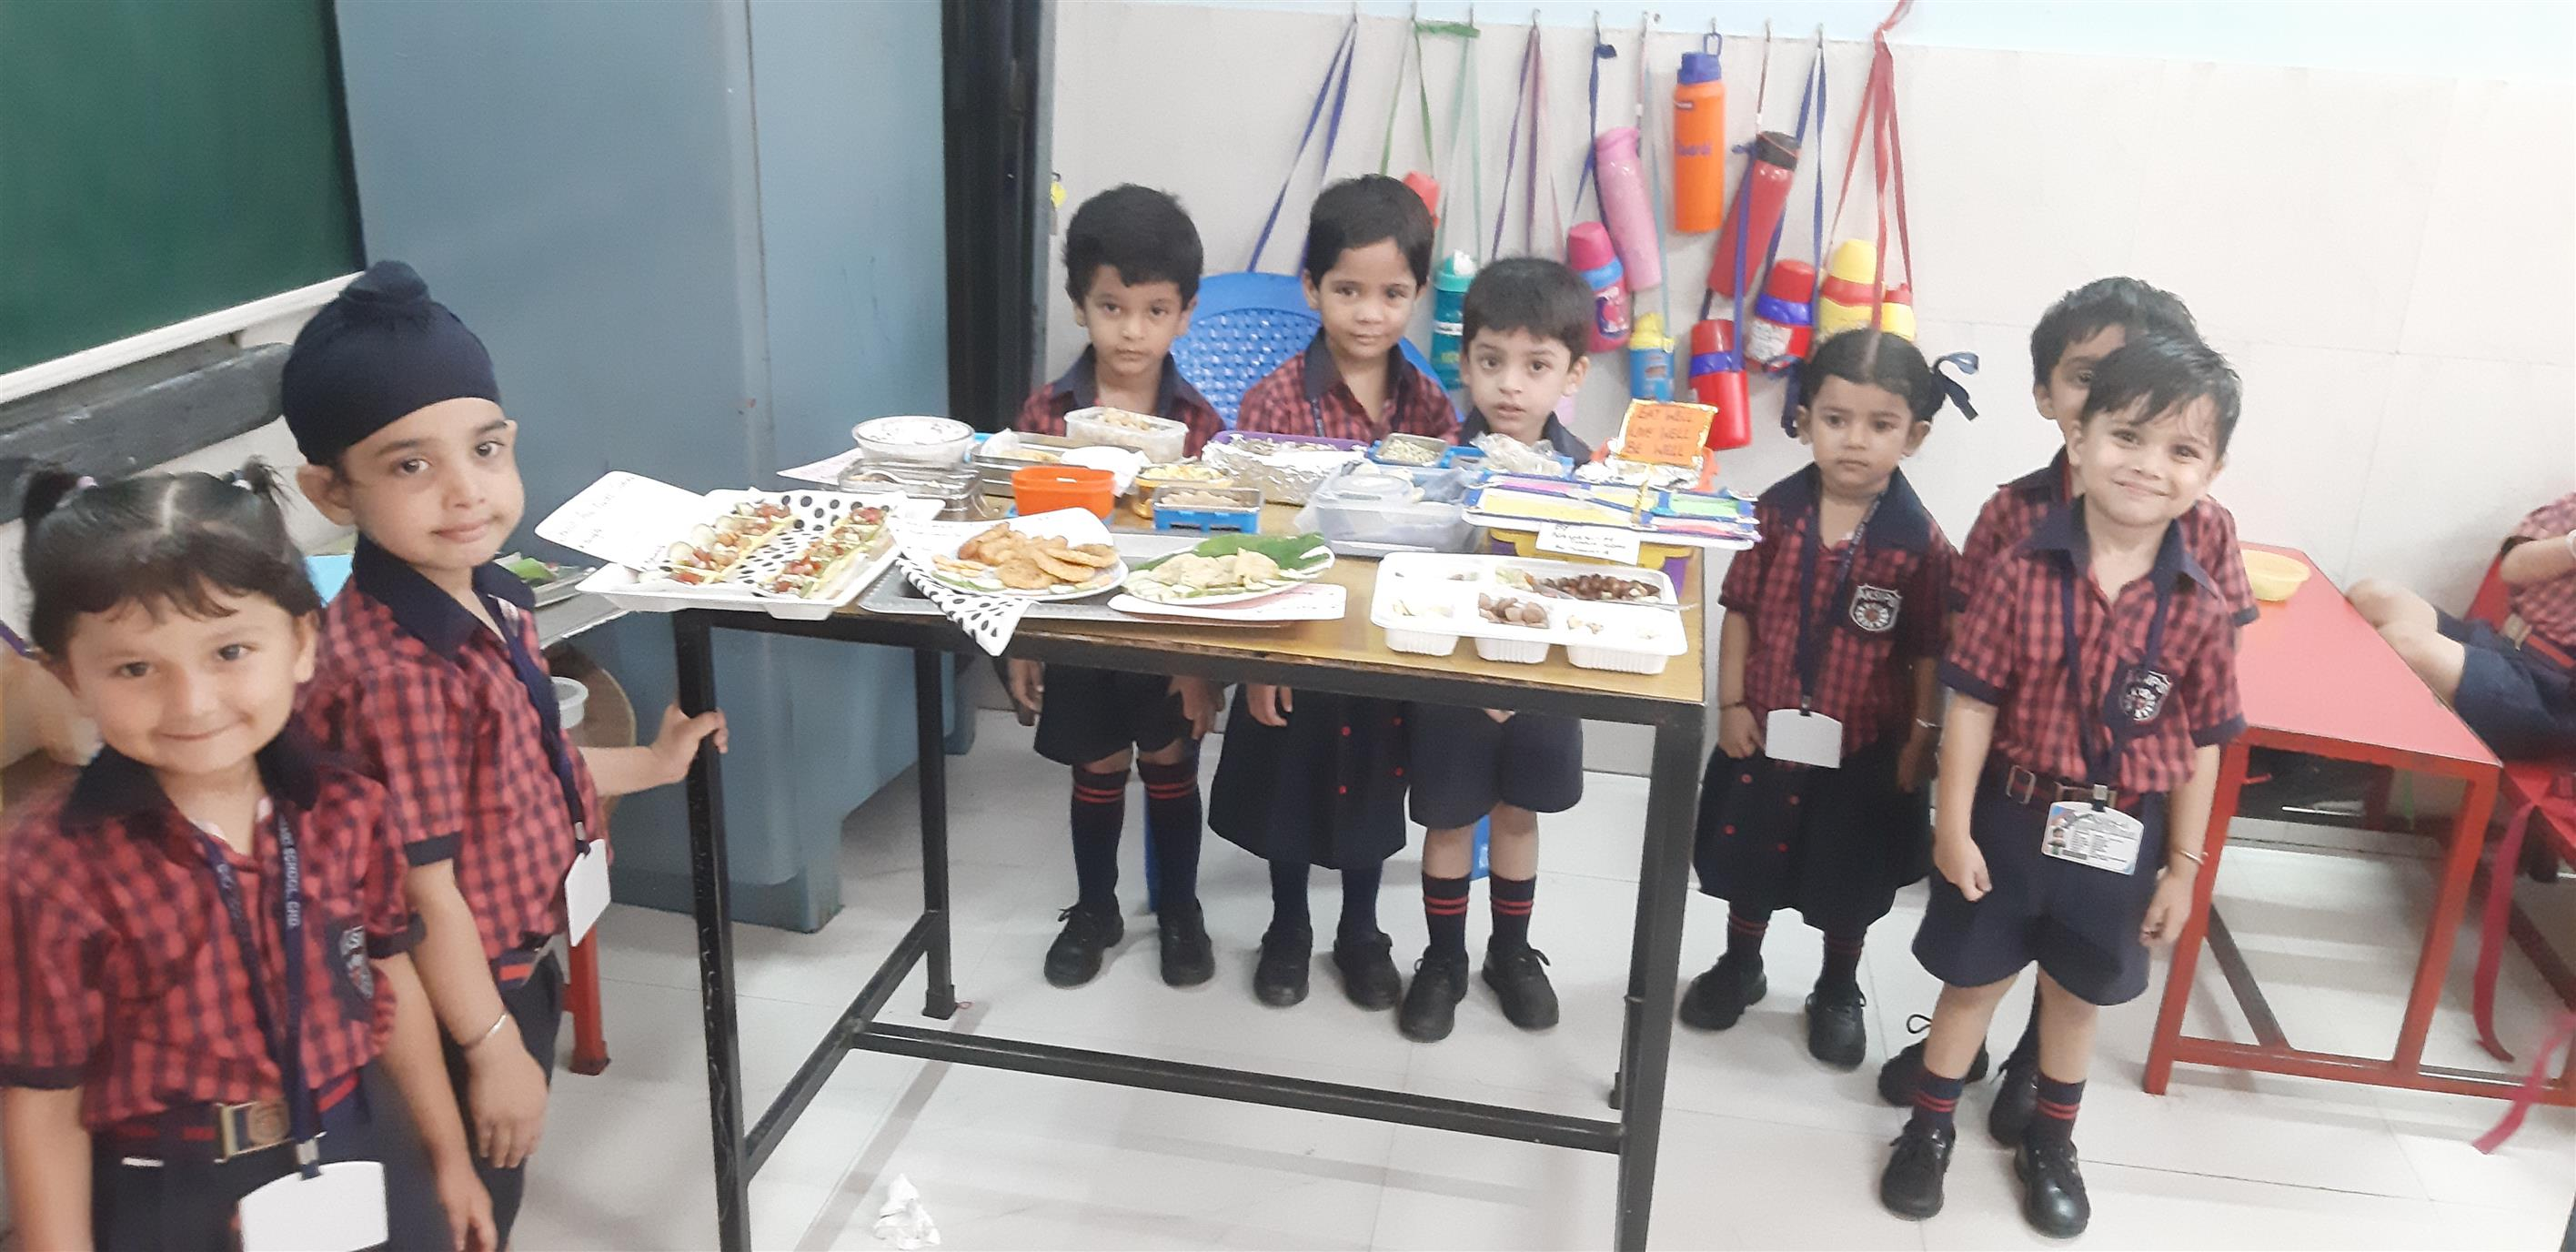 Healthy Tiffin Activity at AKSIPS 41 Smart School        To inculcate healthy eating habits among children the students of Pre Nursery Class of AKSIPS 41 Smart School had healthy tiffin activity. The students brought healthy and nutritious tiffin like idli, vegetable, pulao, sprouts salad, curd, paneer and so on. The children later enjoyed their special tiffins. The importance of developing healthy eating habits was held to the tiny tots by the teachers. | AKSIPS SECTOR-41 CHANDIGARH